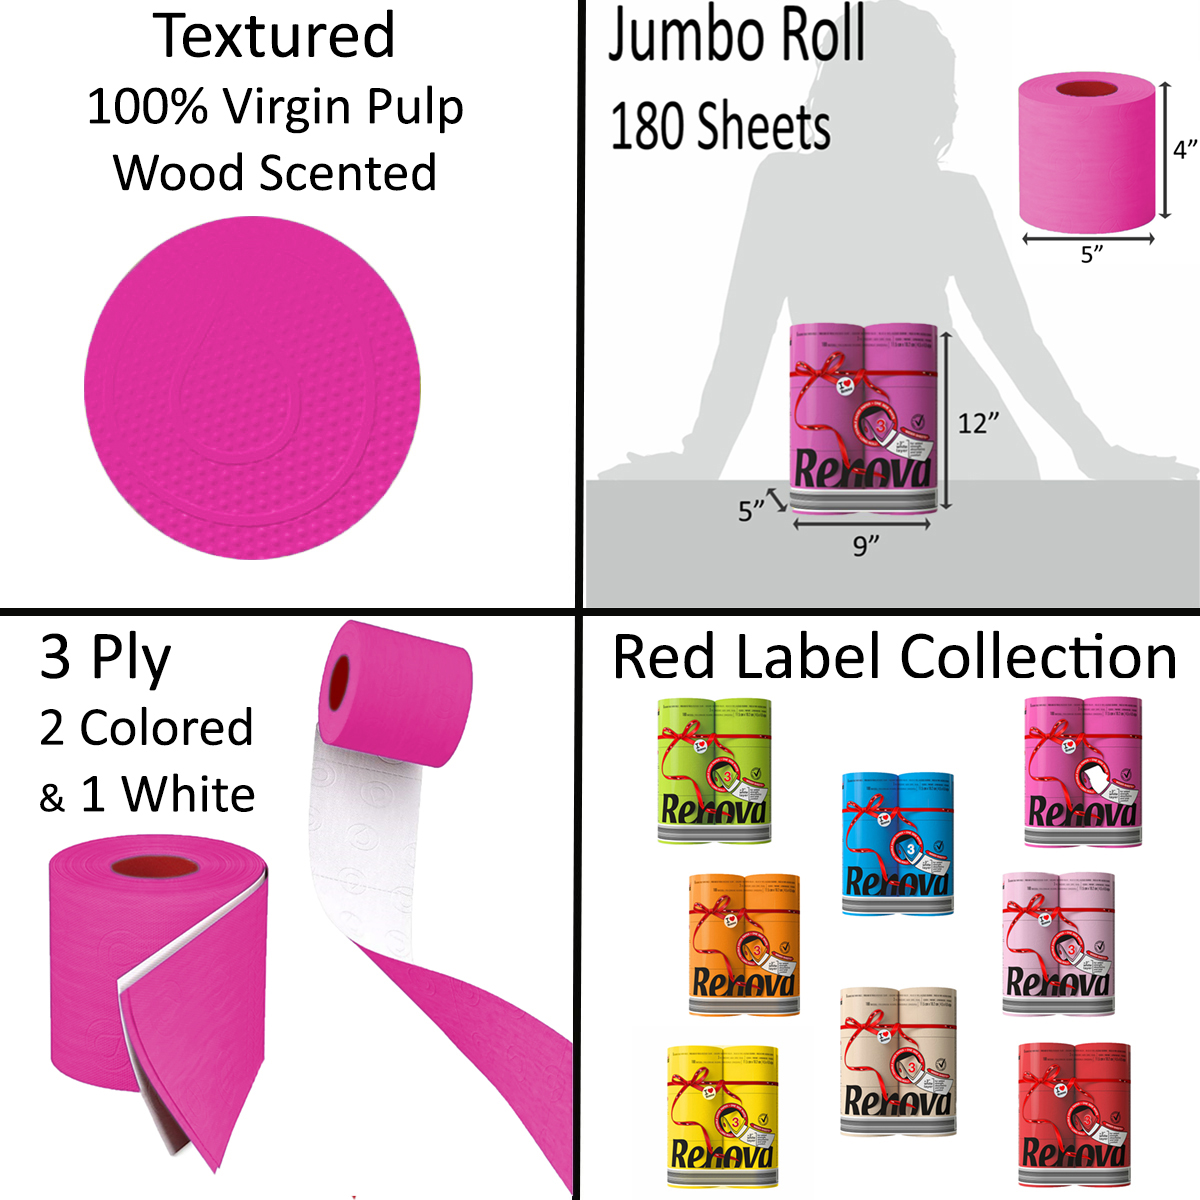 Luxury Scented Colored Toilet Paper 6 Jumbo Rolls 3-Ply-180 Sheets-Pallet 270 packs-1620R